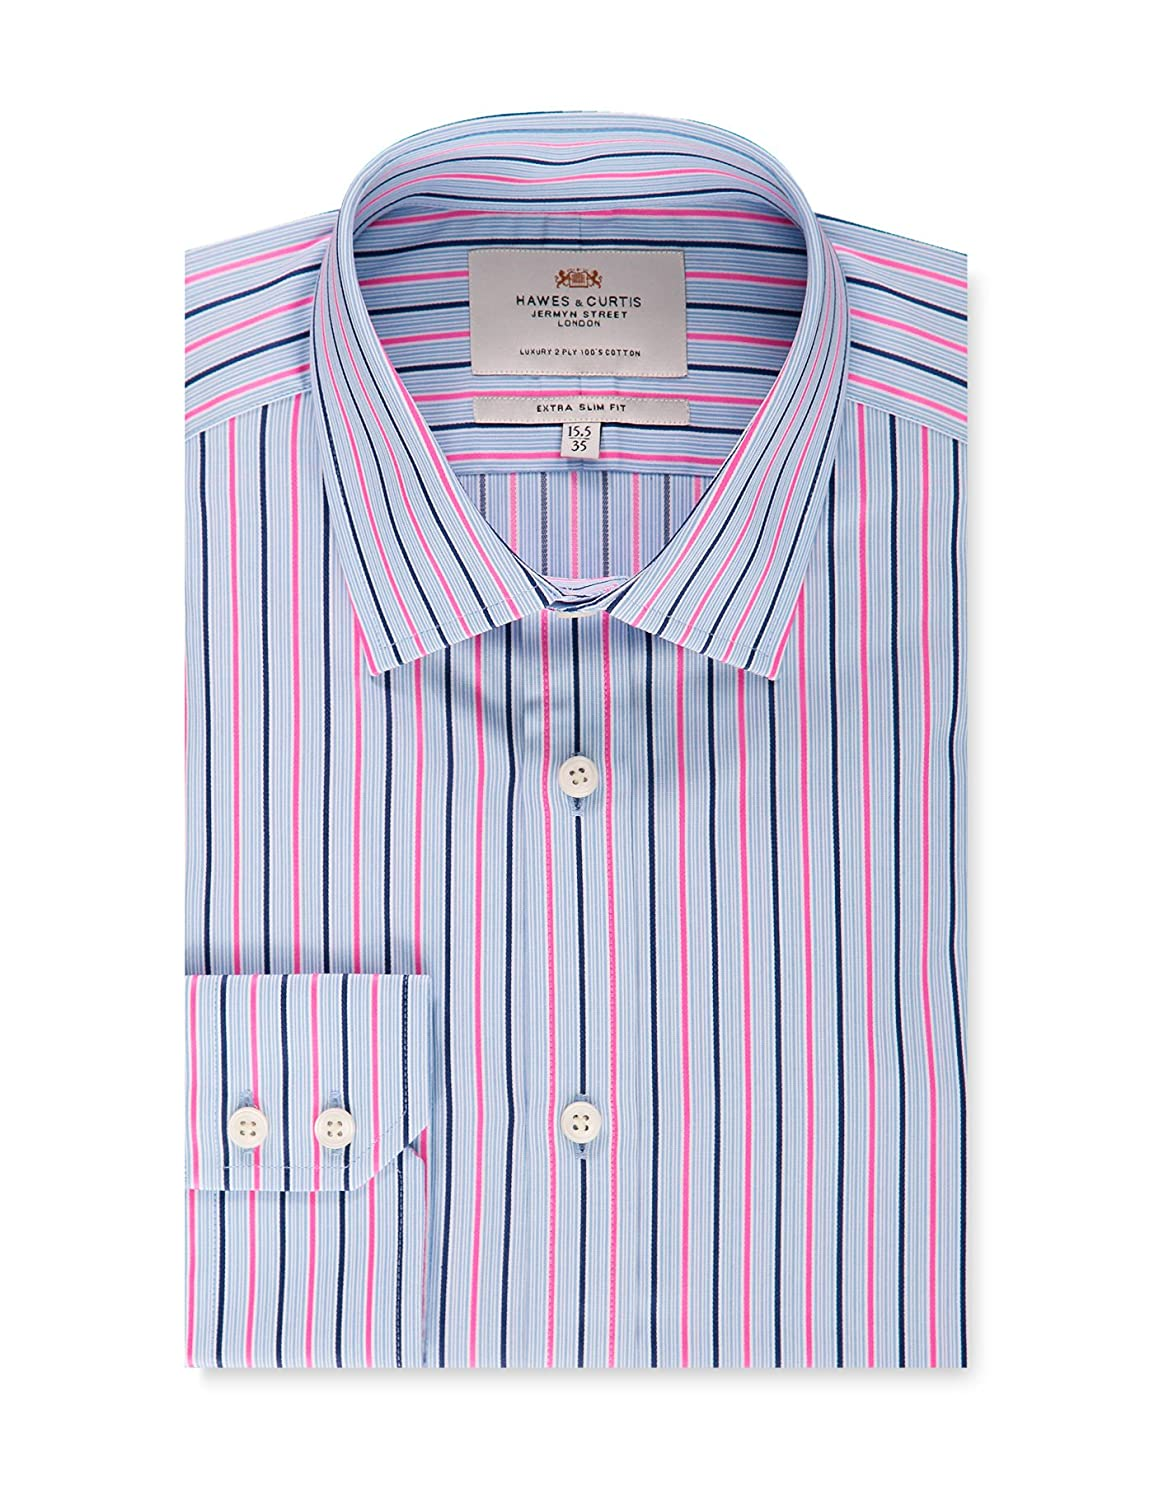 64e12bcbdd HAWES & CURTIS Mens Blue & Pink Multi Stripe Extra Slim Fit Dress Shirt - Single  Cuff - Easy Iron at Amazon Men's Clothing store: